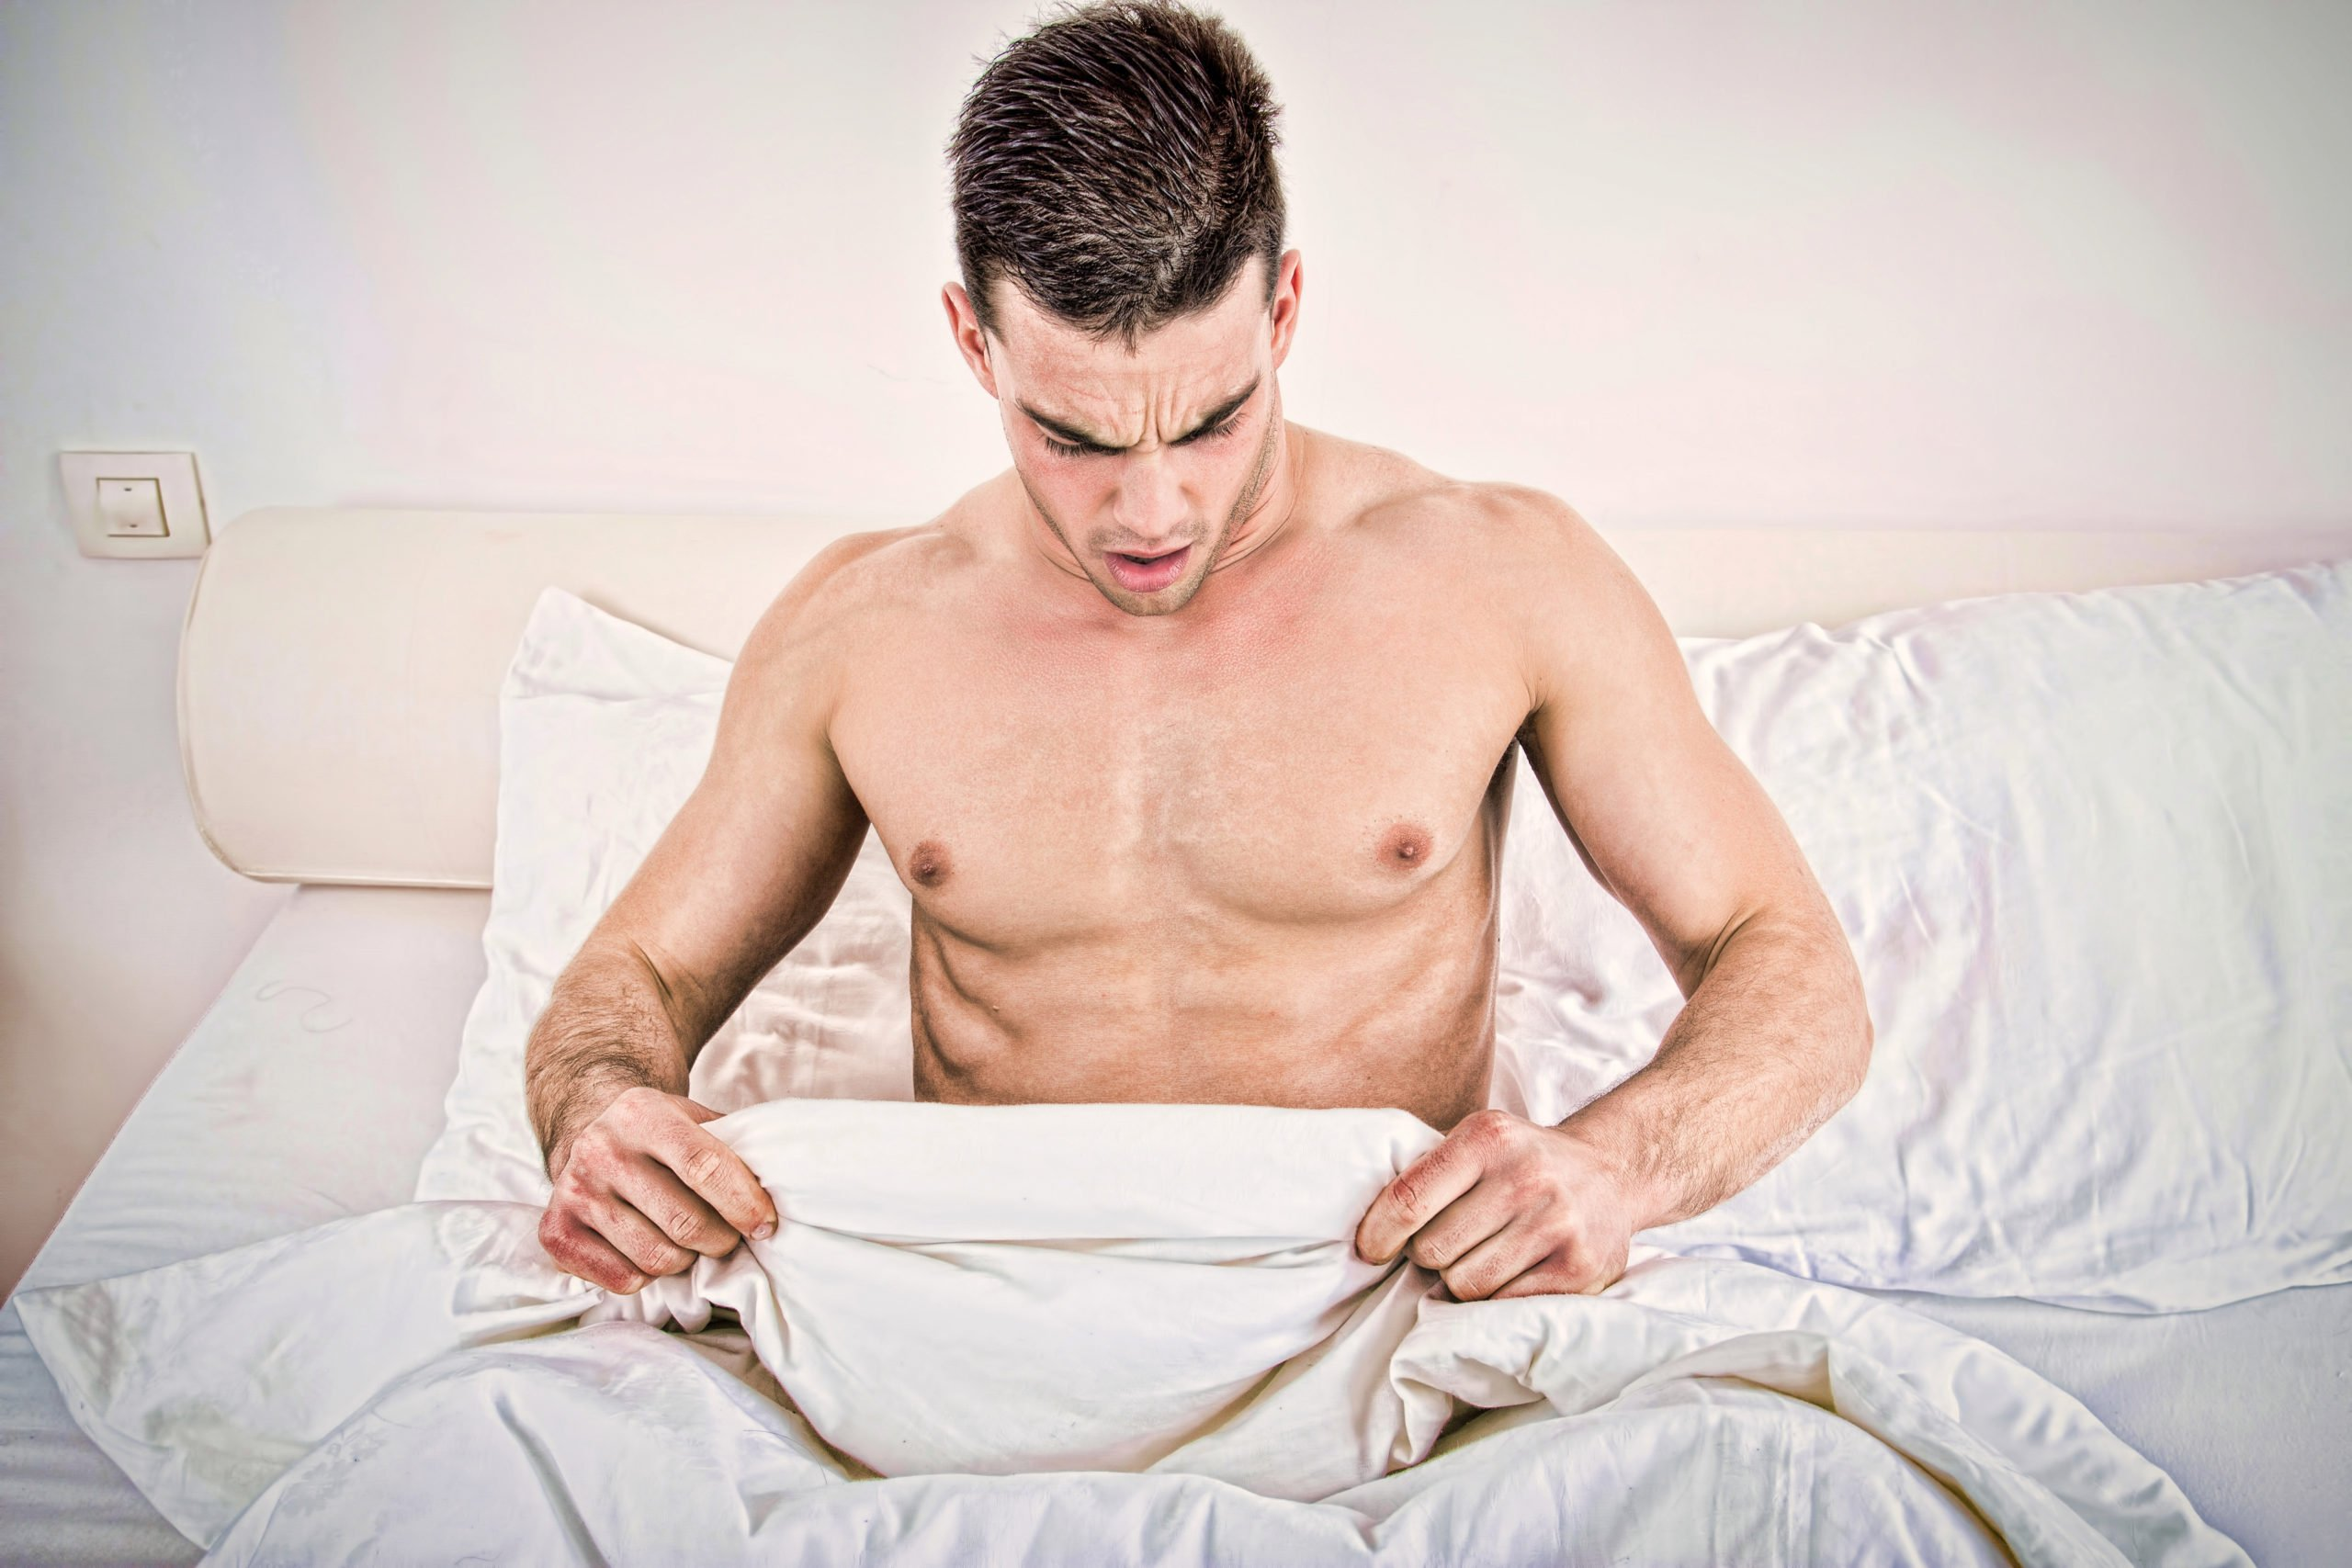 Penile Pain When Urinating Accompanied By Blood Discharge And Pain In The Testicles And Right Hip?